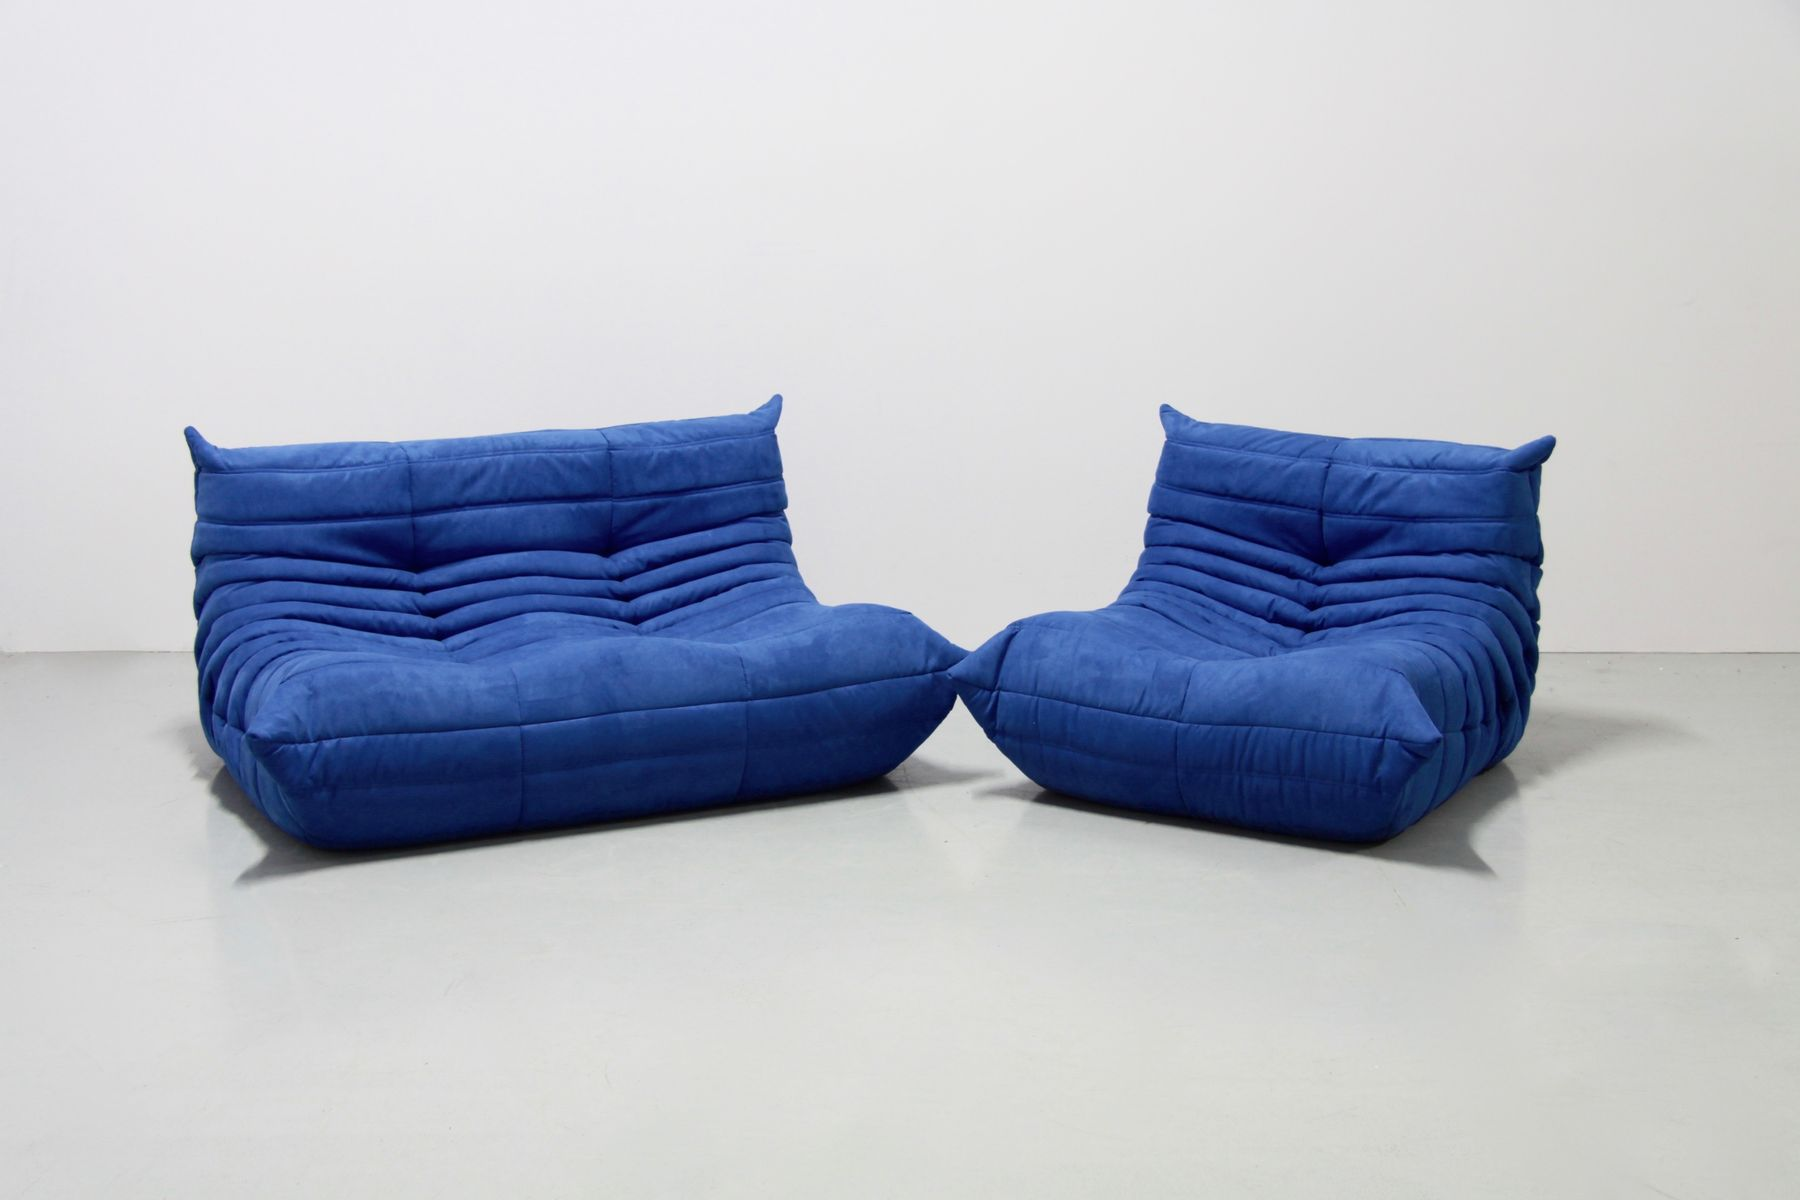 vintage togo sofa set aus blauer mikrofaser von michel ducaroy f r ligne roset 1970er bei. Black Bedroom Furniture Sets. Home Design Ideas